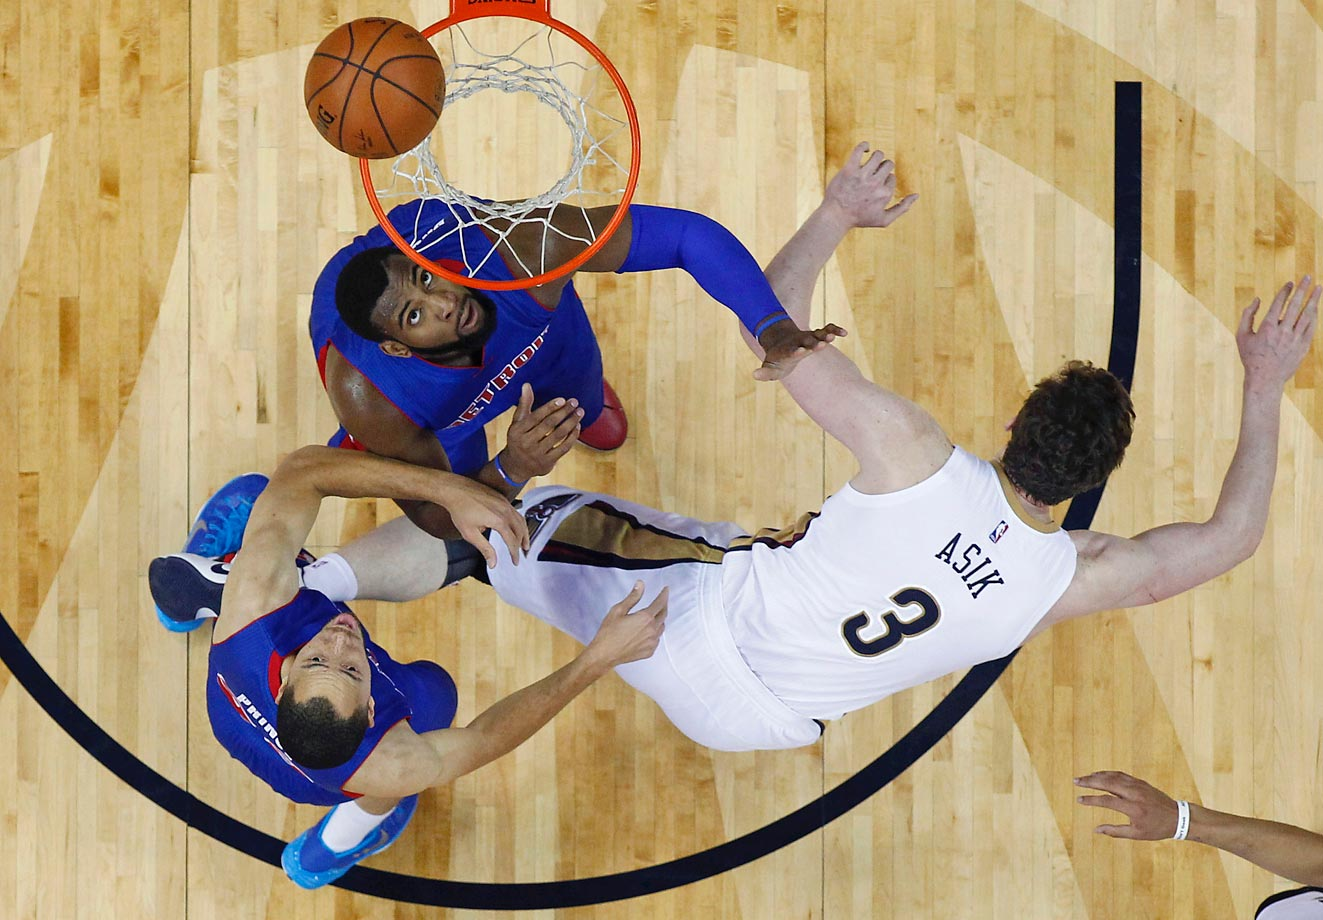 New Orleans Pelicans center Omer Asik falls over while attempting to drive to the basket against the Pistons Tayshaun Prince and Andre Drummond.